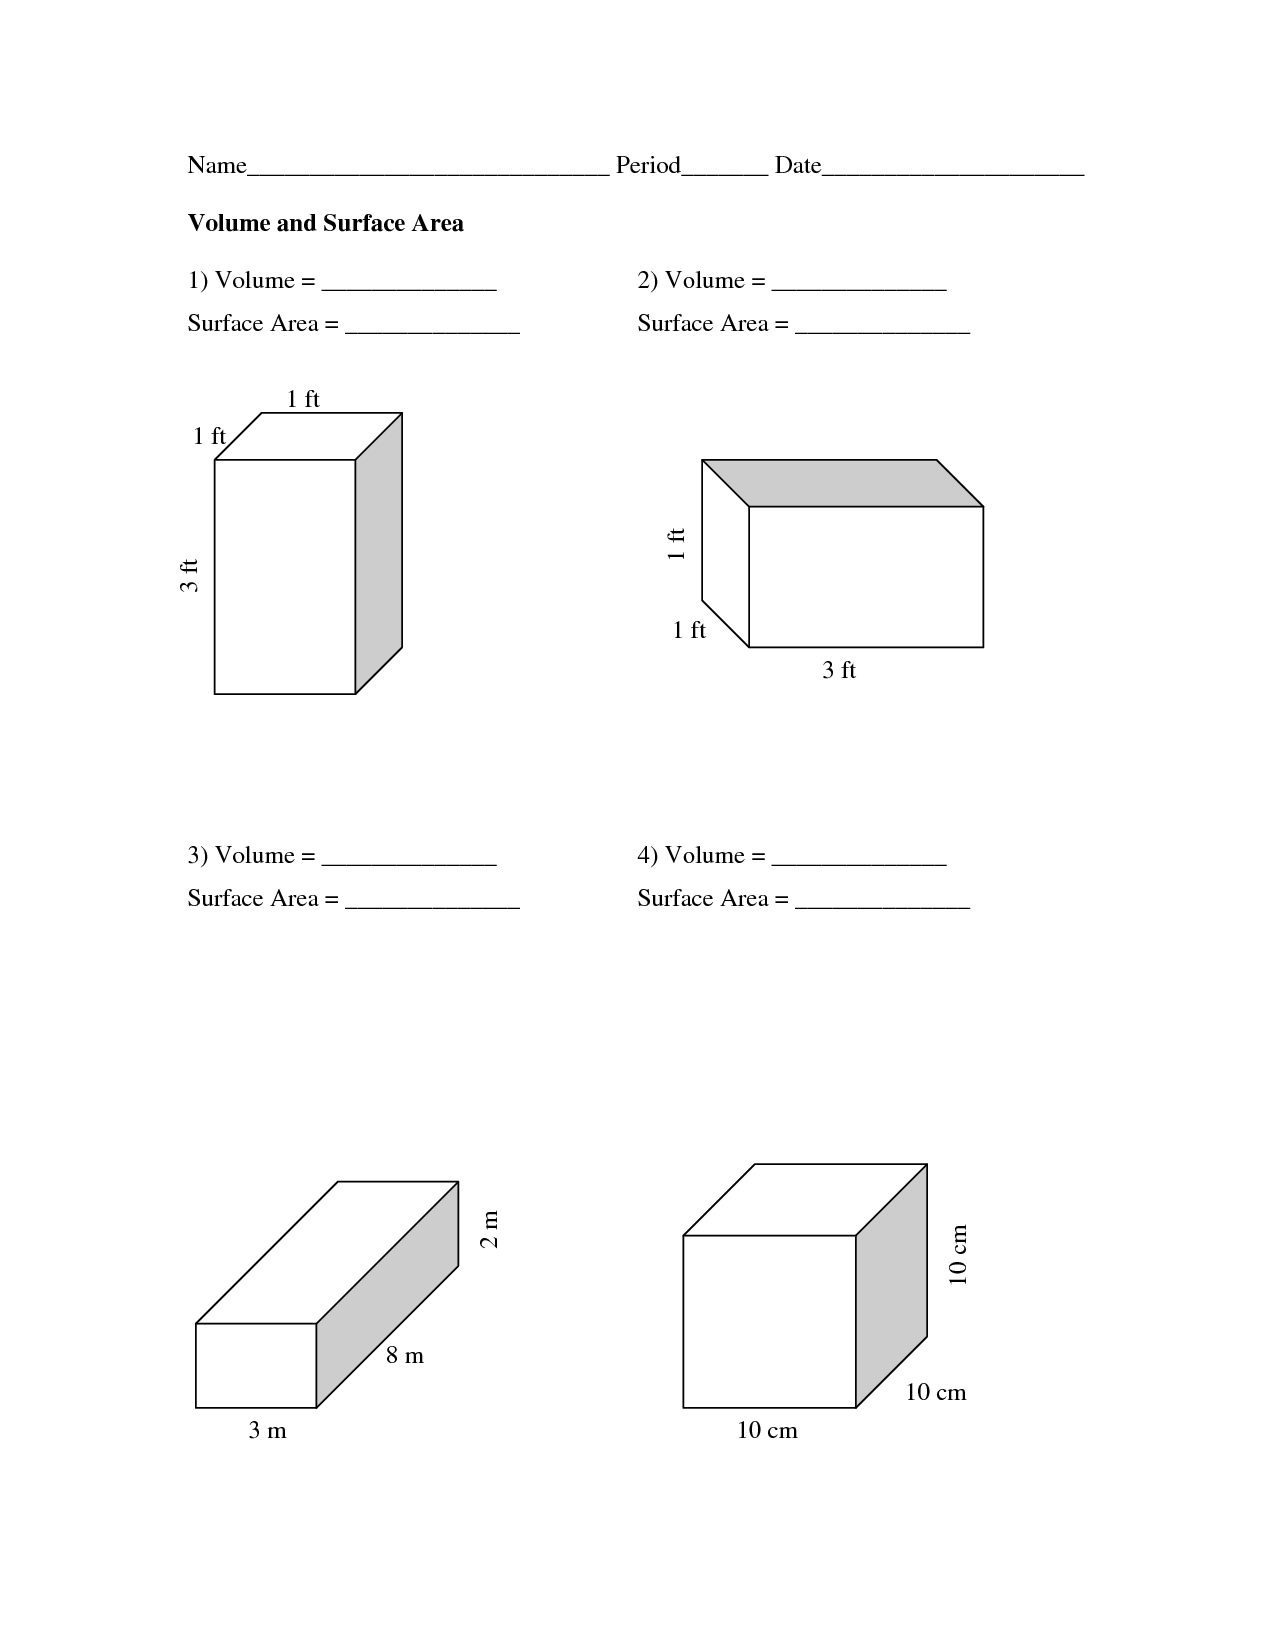 Worksheets Area And Volume Worksheets volume and surface area worksheets pdf